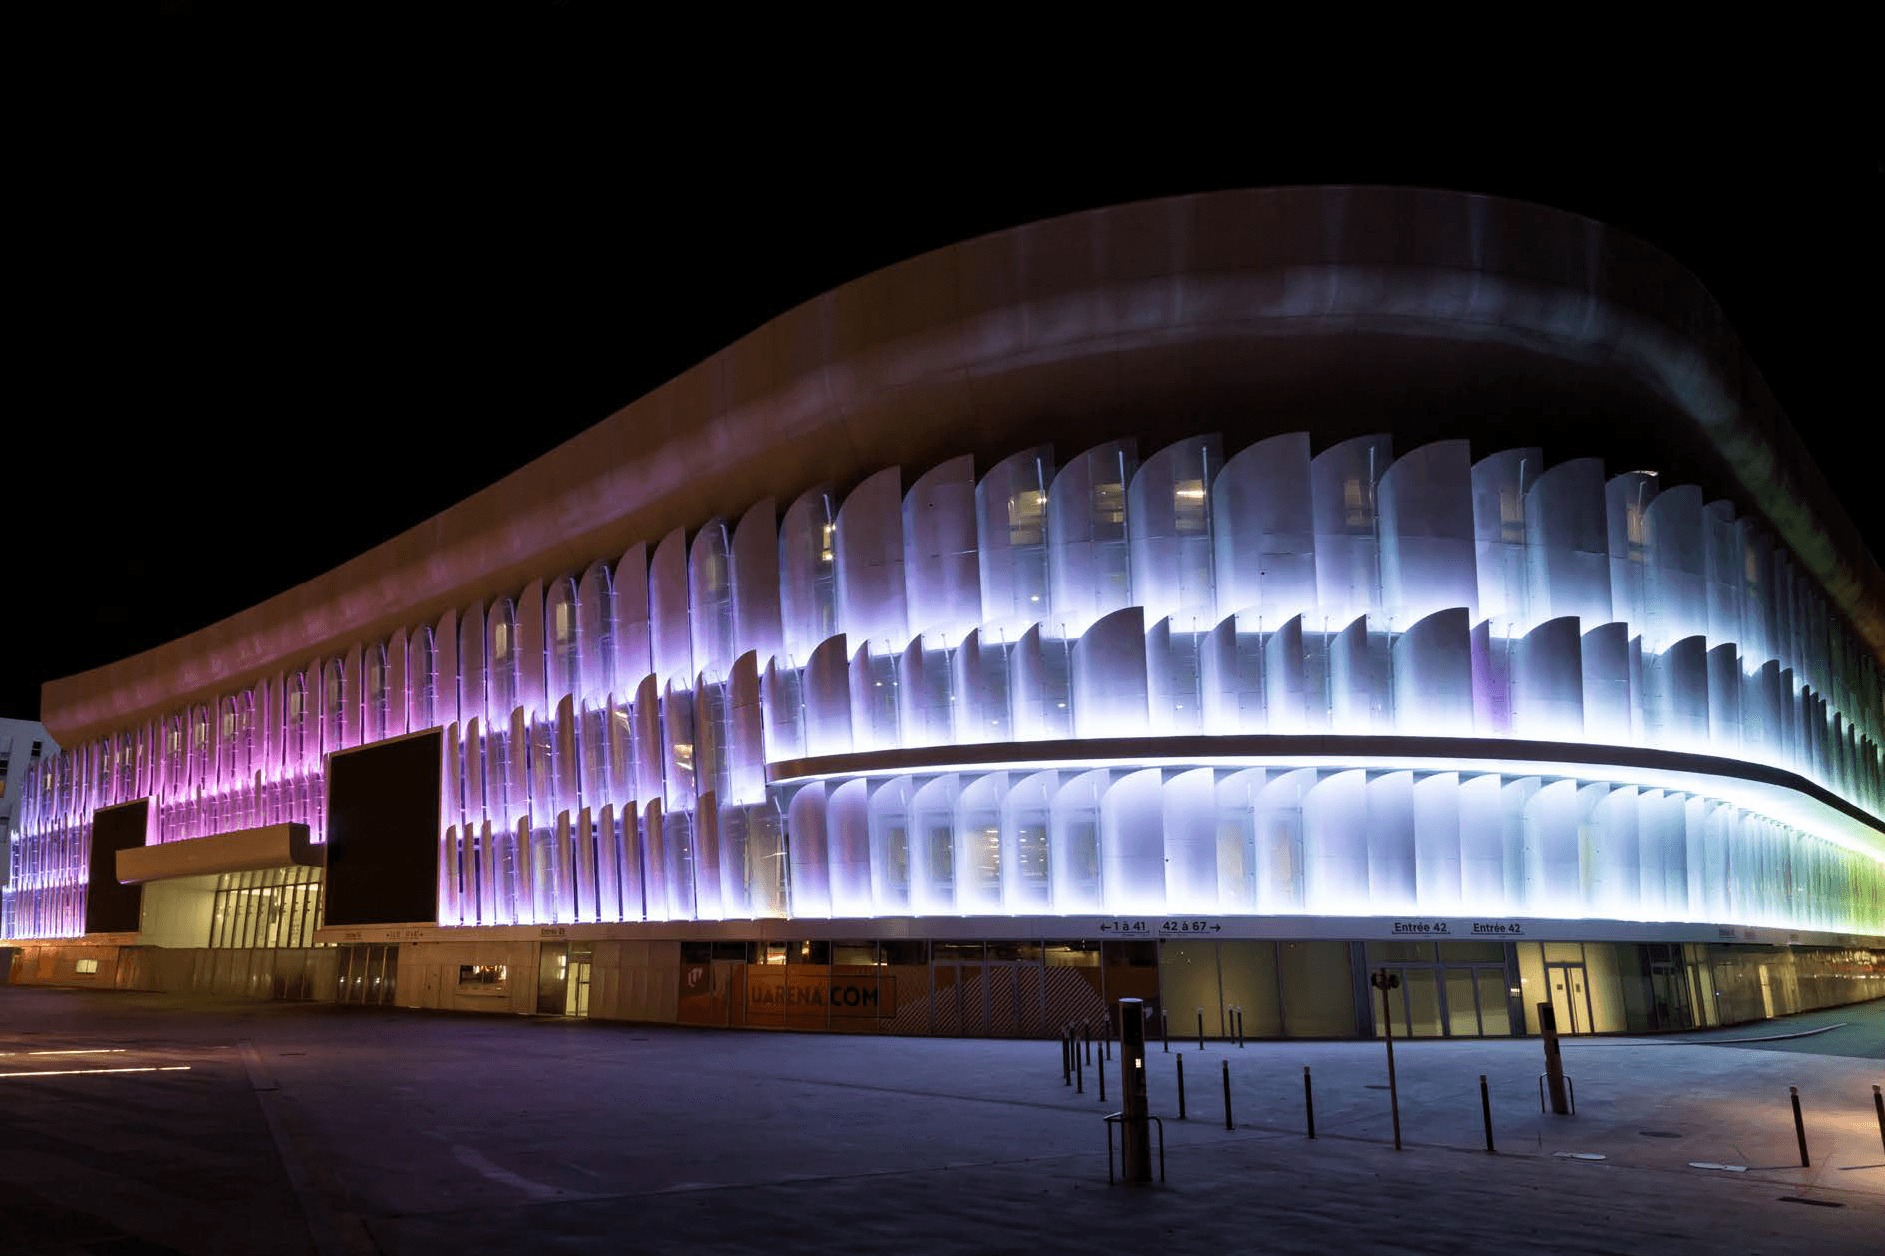 Eccelectro U arena de Paris Éclairage LED